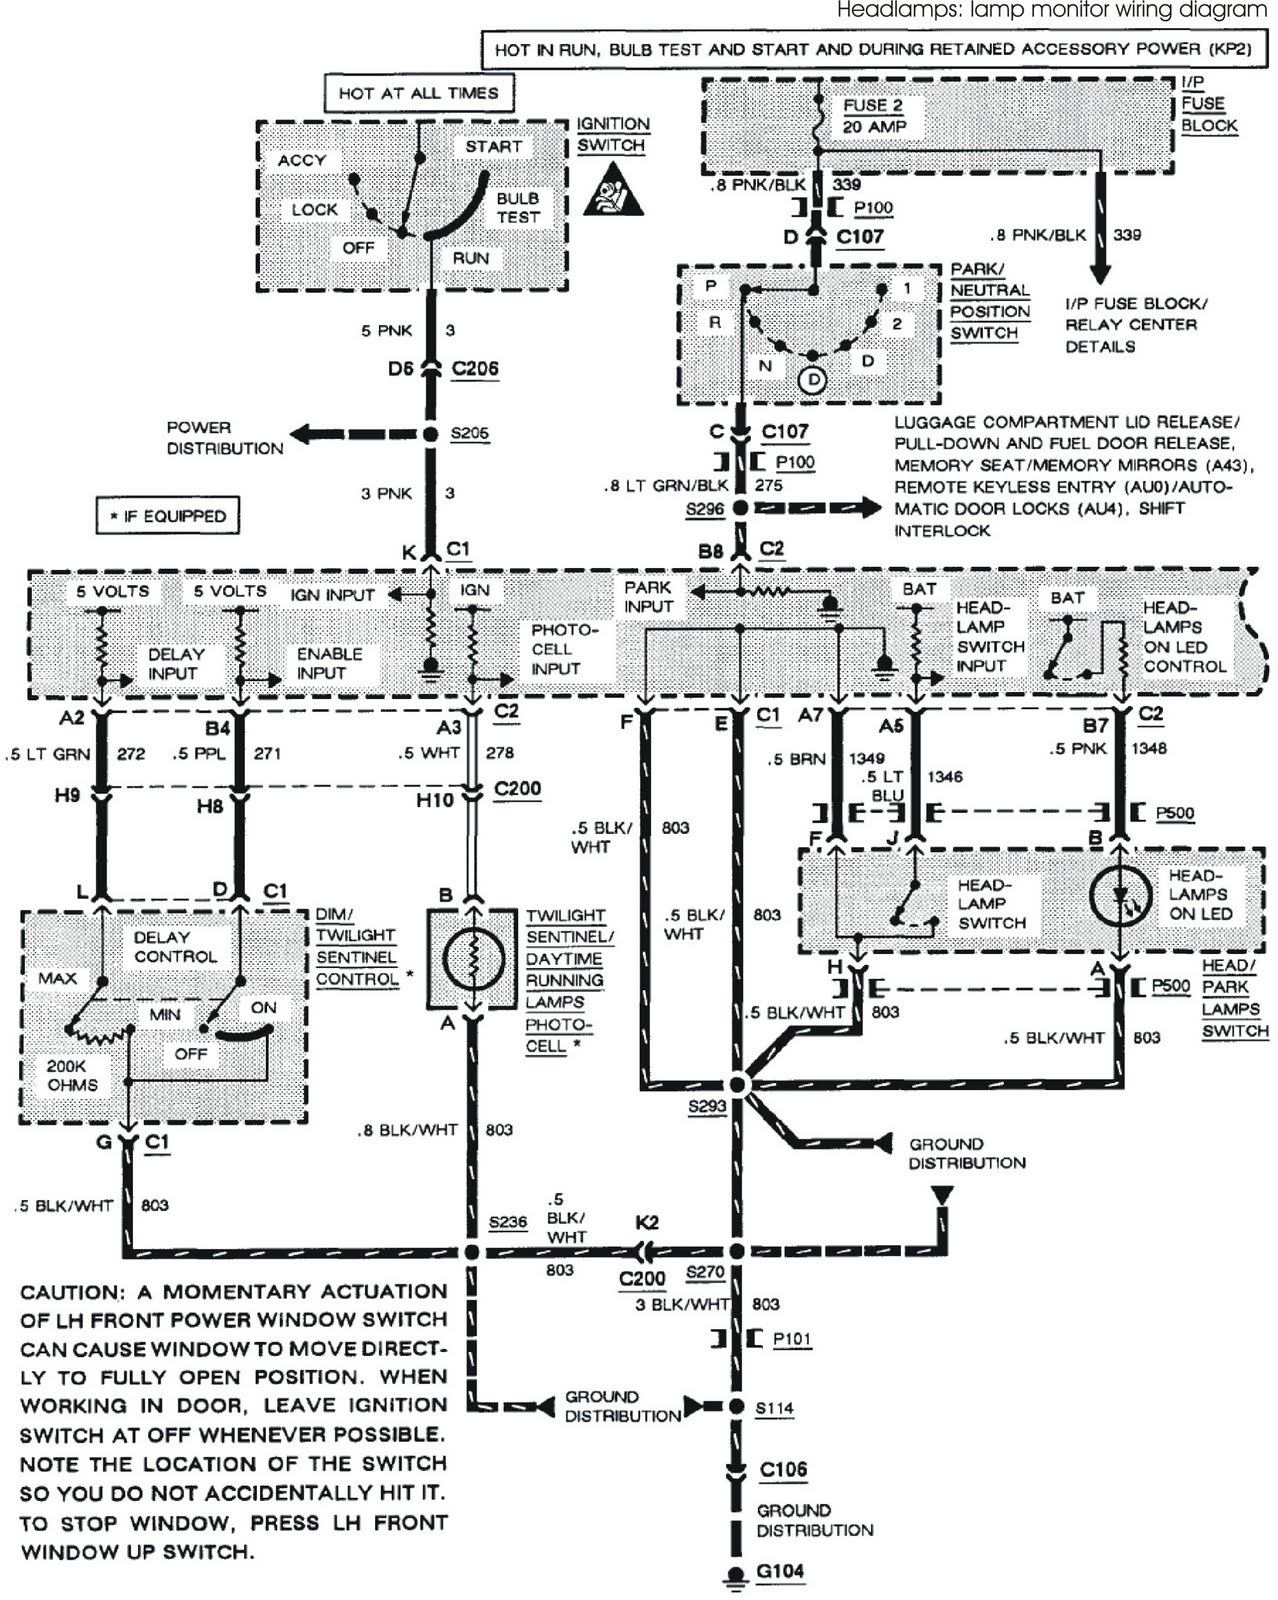 chevy silverado wiring diagram image chevy truck trailer wiring diagram solidfonts on 2002 chevy silverado wiring diagram